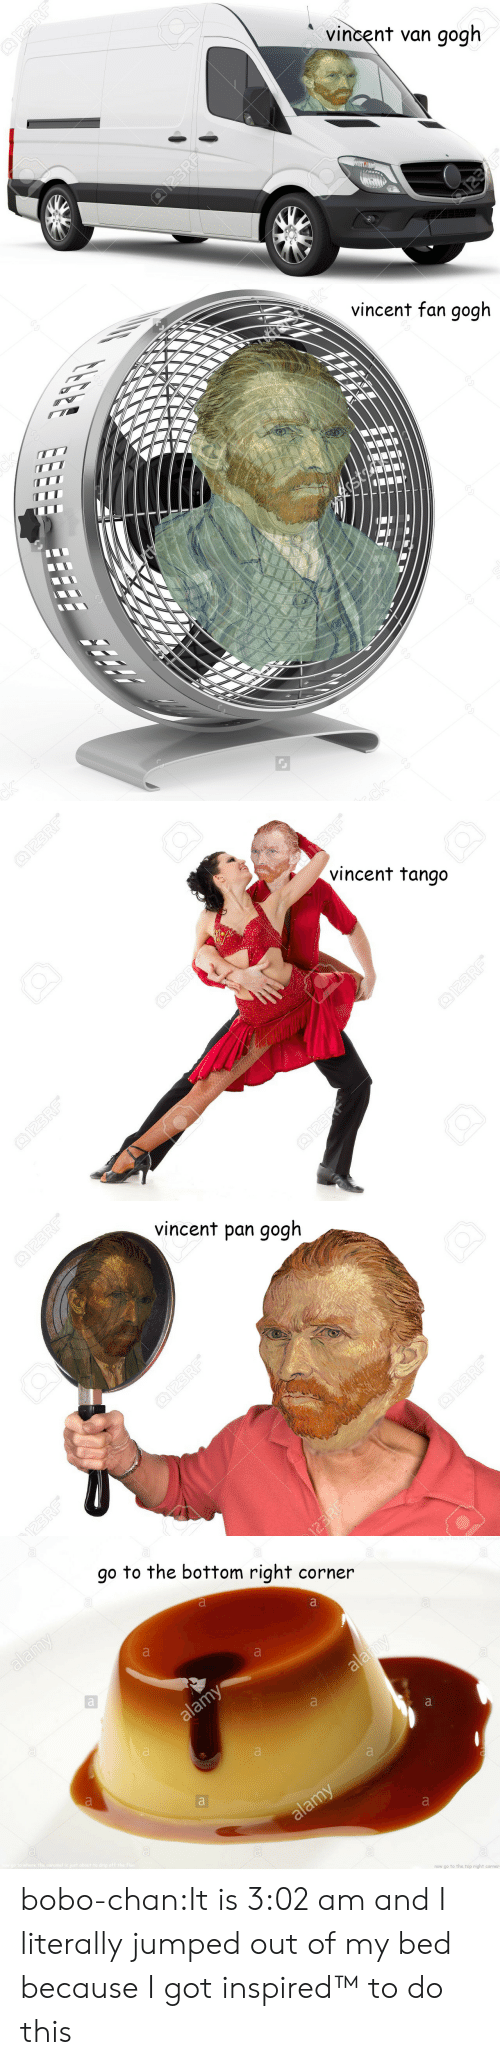 Tumblr, Vincent Van Gogh, and Blog: vincent van gogh   vincent fan gogh  TIT   vincent tango   vincent pan gogh   go to the bottom right corner  on gogh  to where the c  now go to the top right corner bobo-chan:It is 3:02 am and I literally jumped out of my bed because I got inspired™ to do this